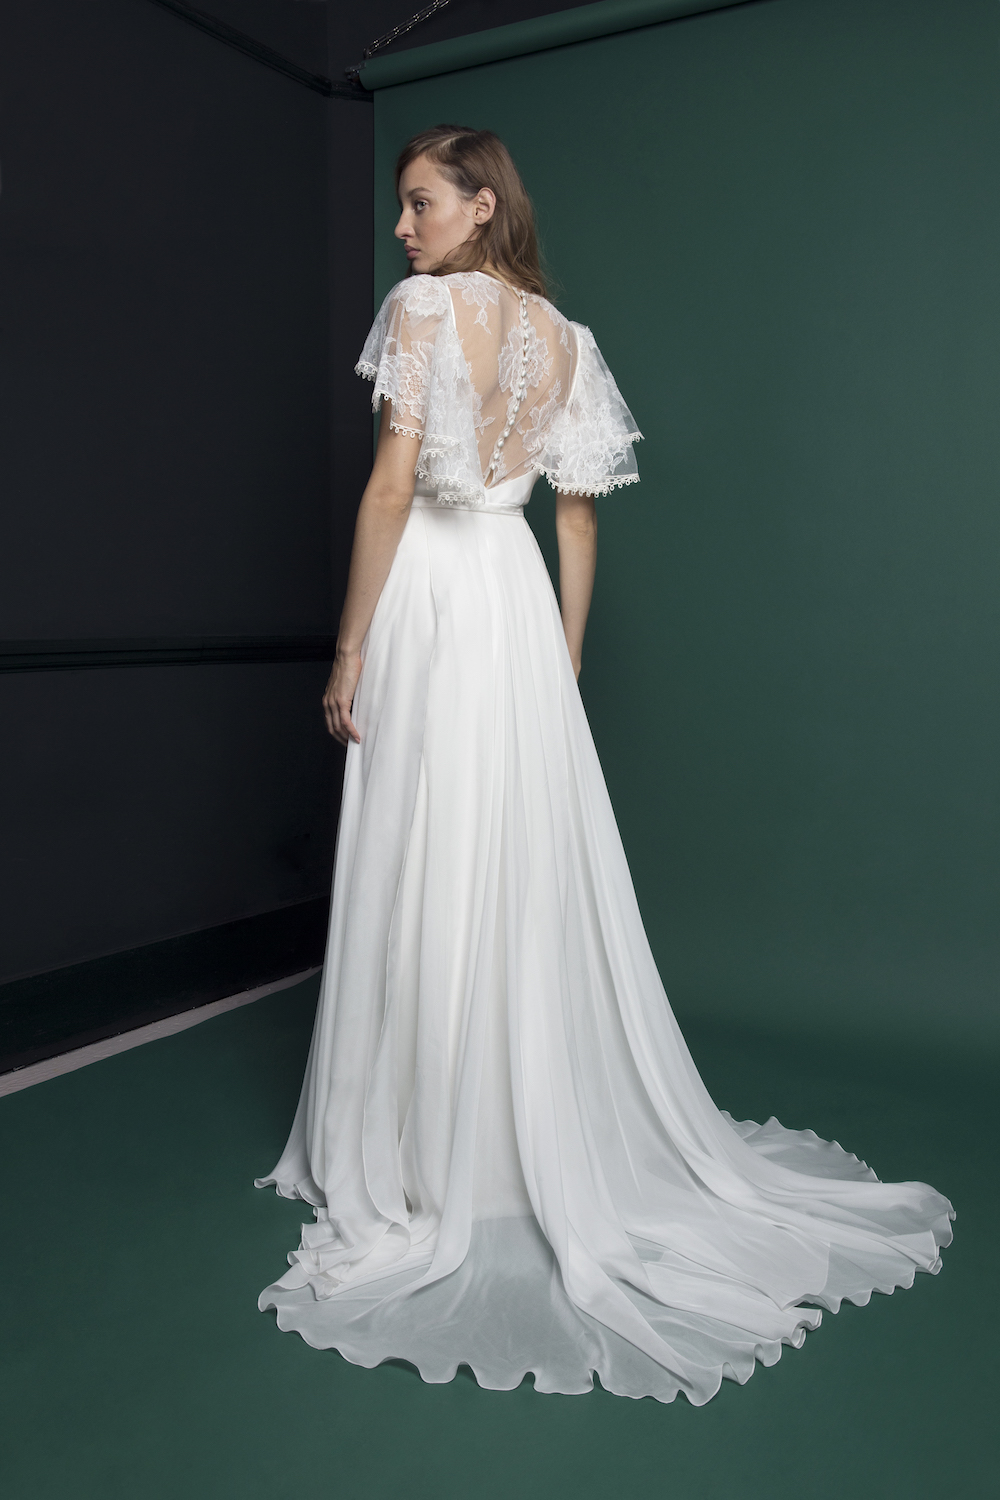 RIDLEY SKIRT & TOP | WEDDING DRESS BY HALFPENNY LONDON | ATLANTIS COLLECTION